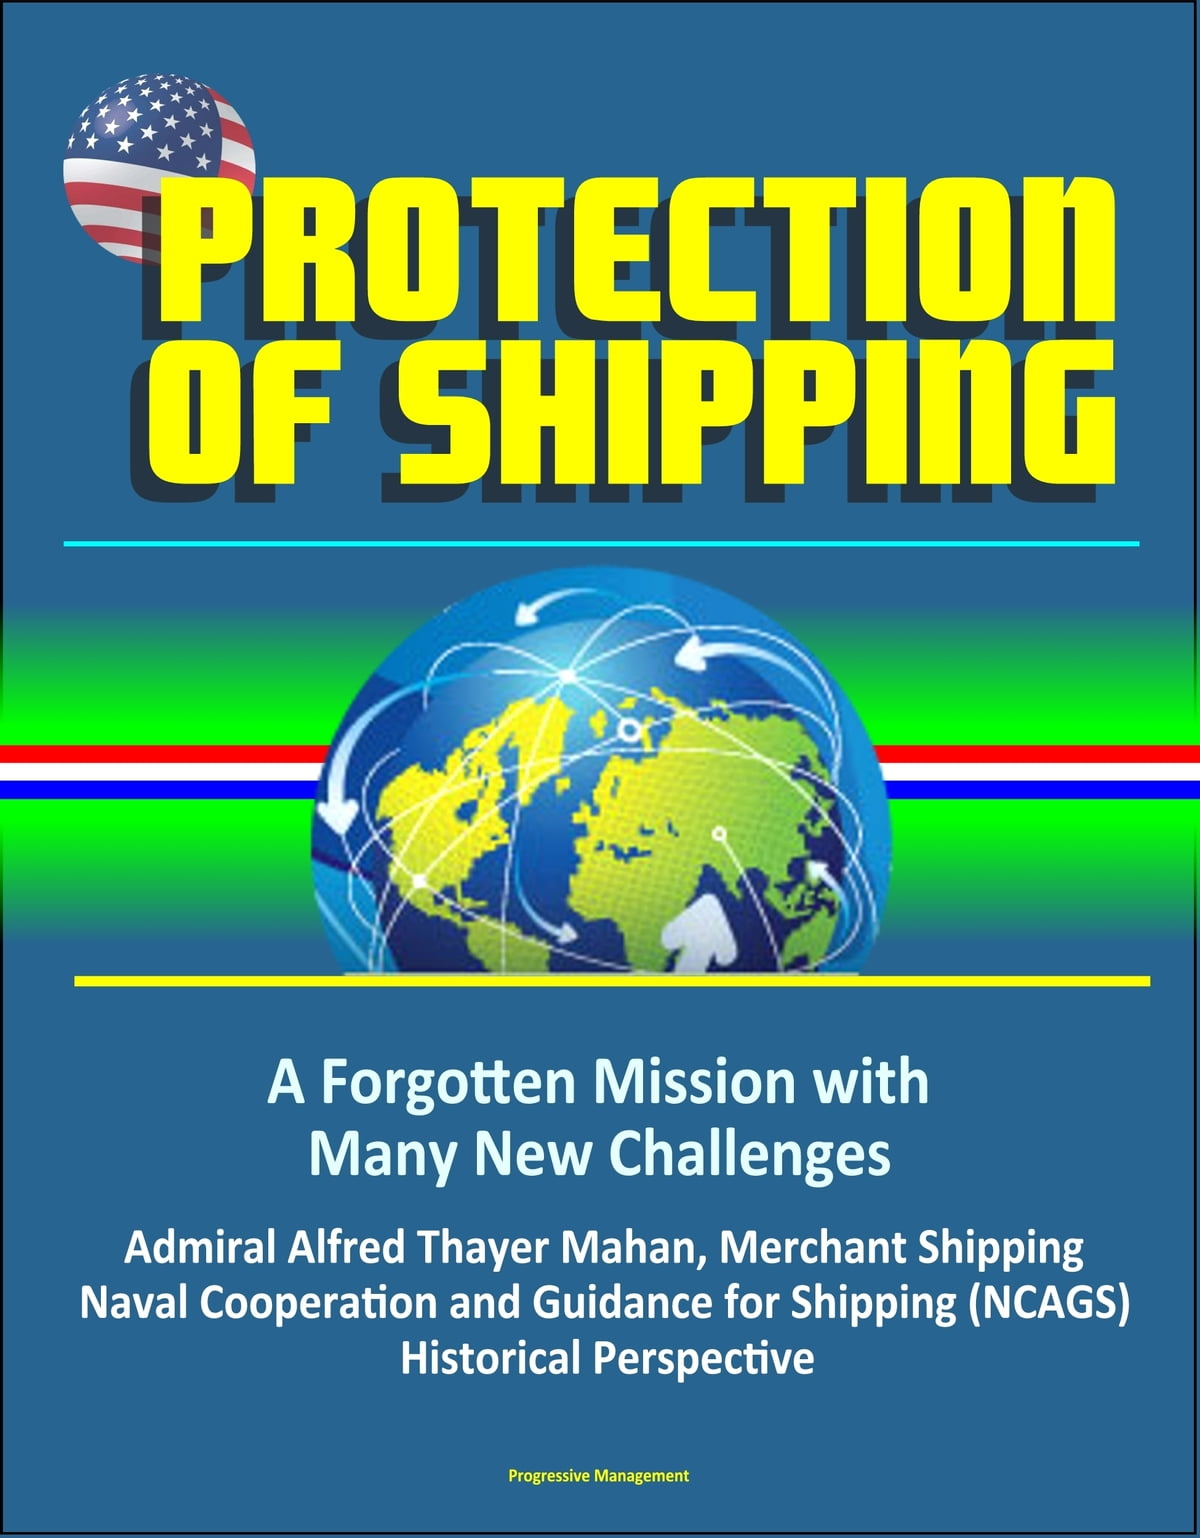 Protection of Shipping: A Forgotten Mission with Many New Challenges -  Admiral Alfred Thayer Mahan, Merchant Shipping, Naval Cooperation and  Guidance